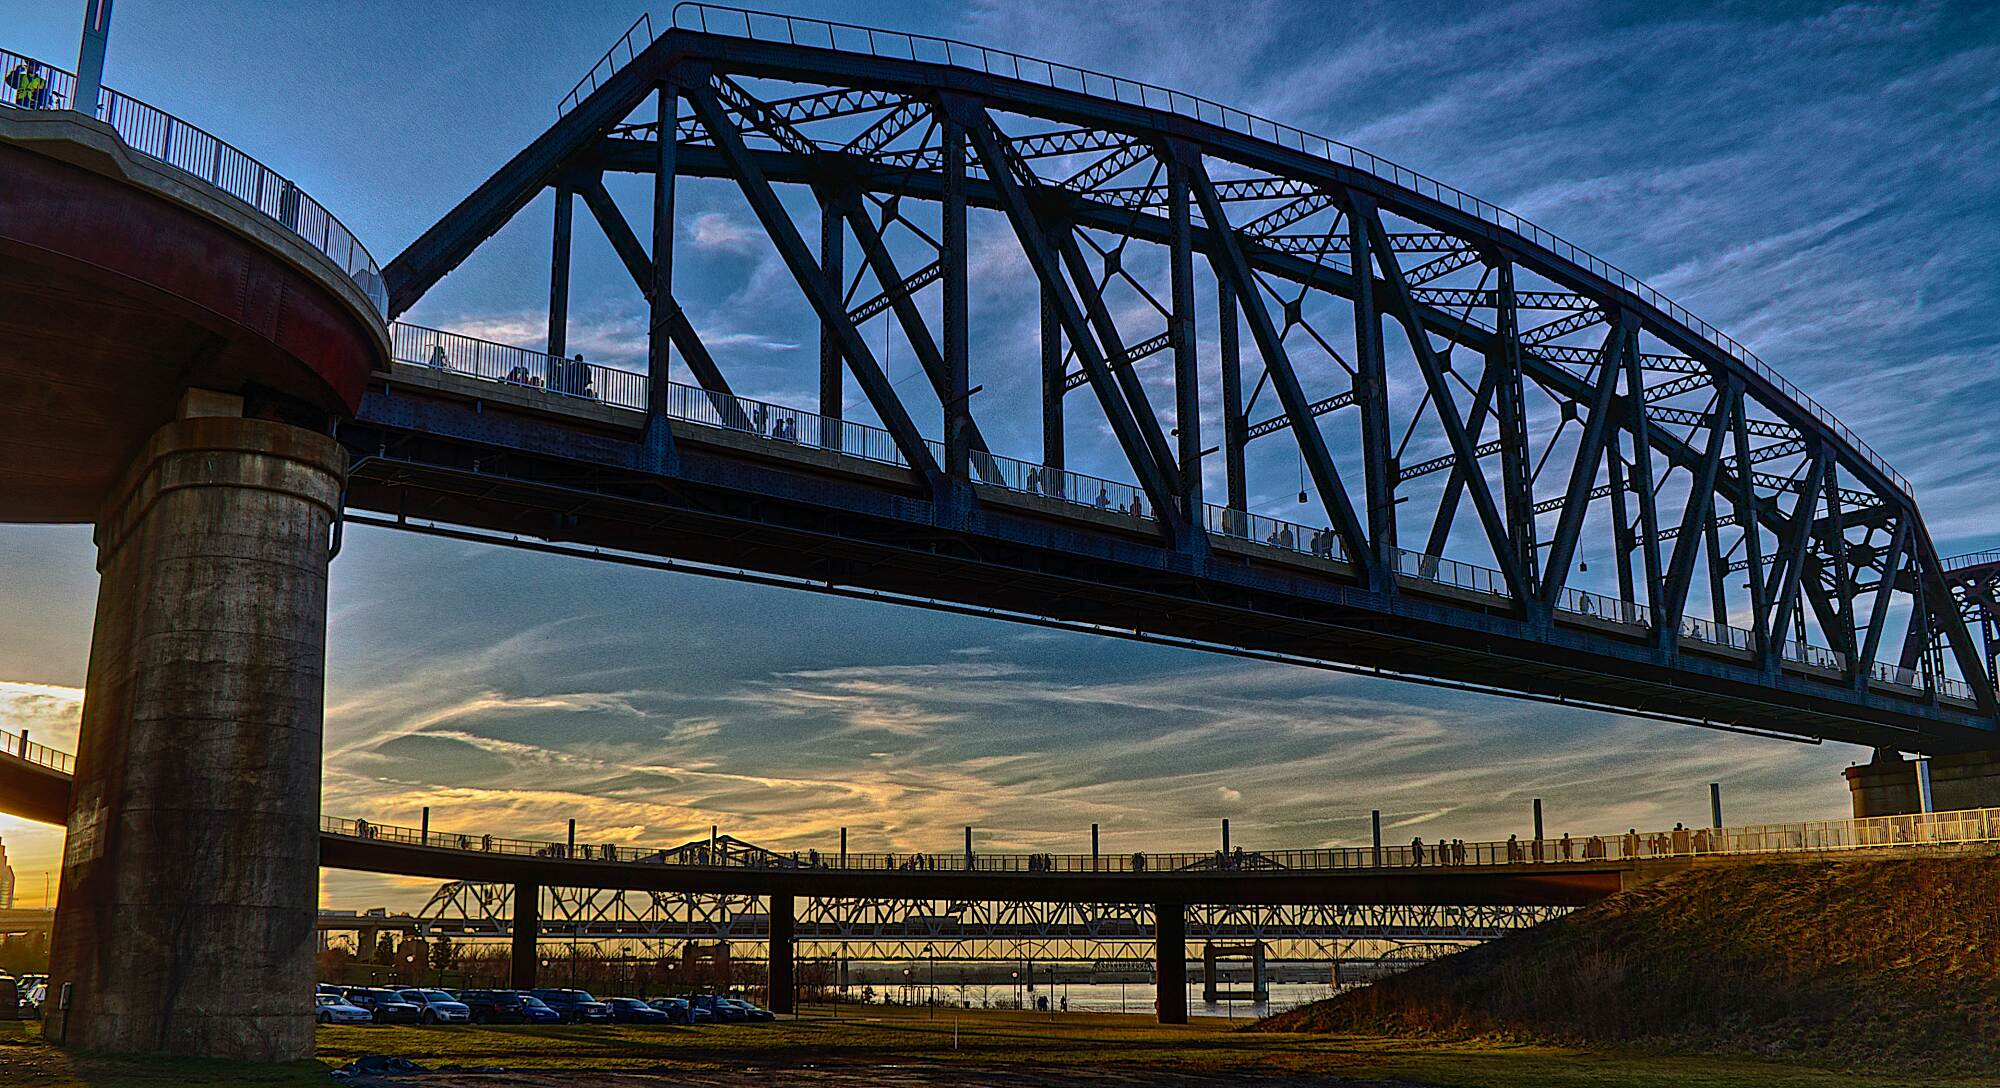 Big Four Bridge Busy Bridge The Big Four® is a popular place to view the sun setting over the Ohio River.